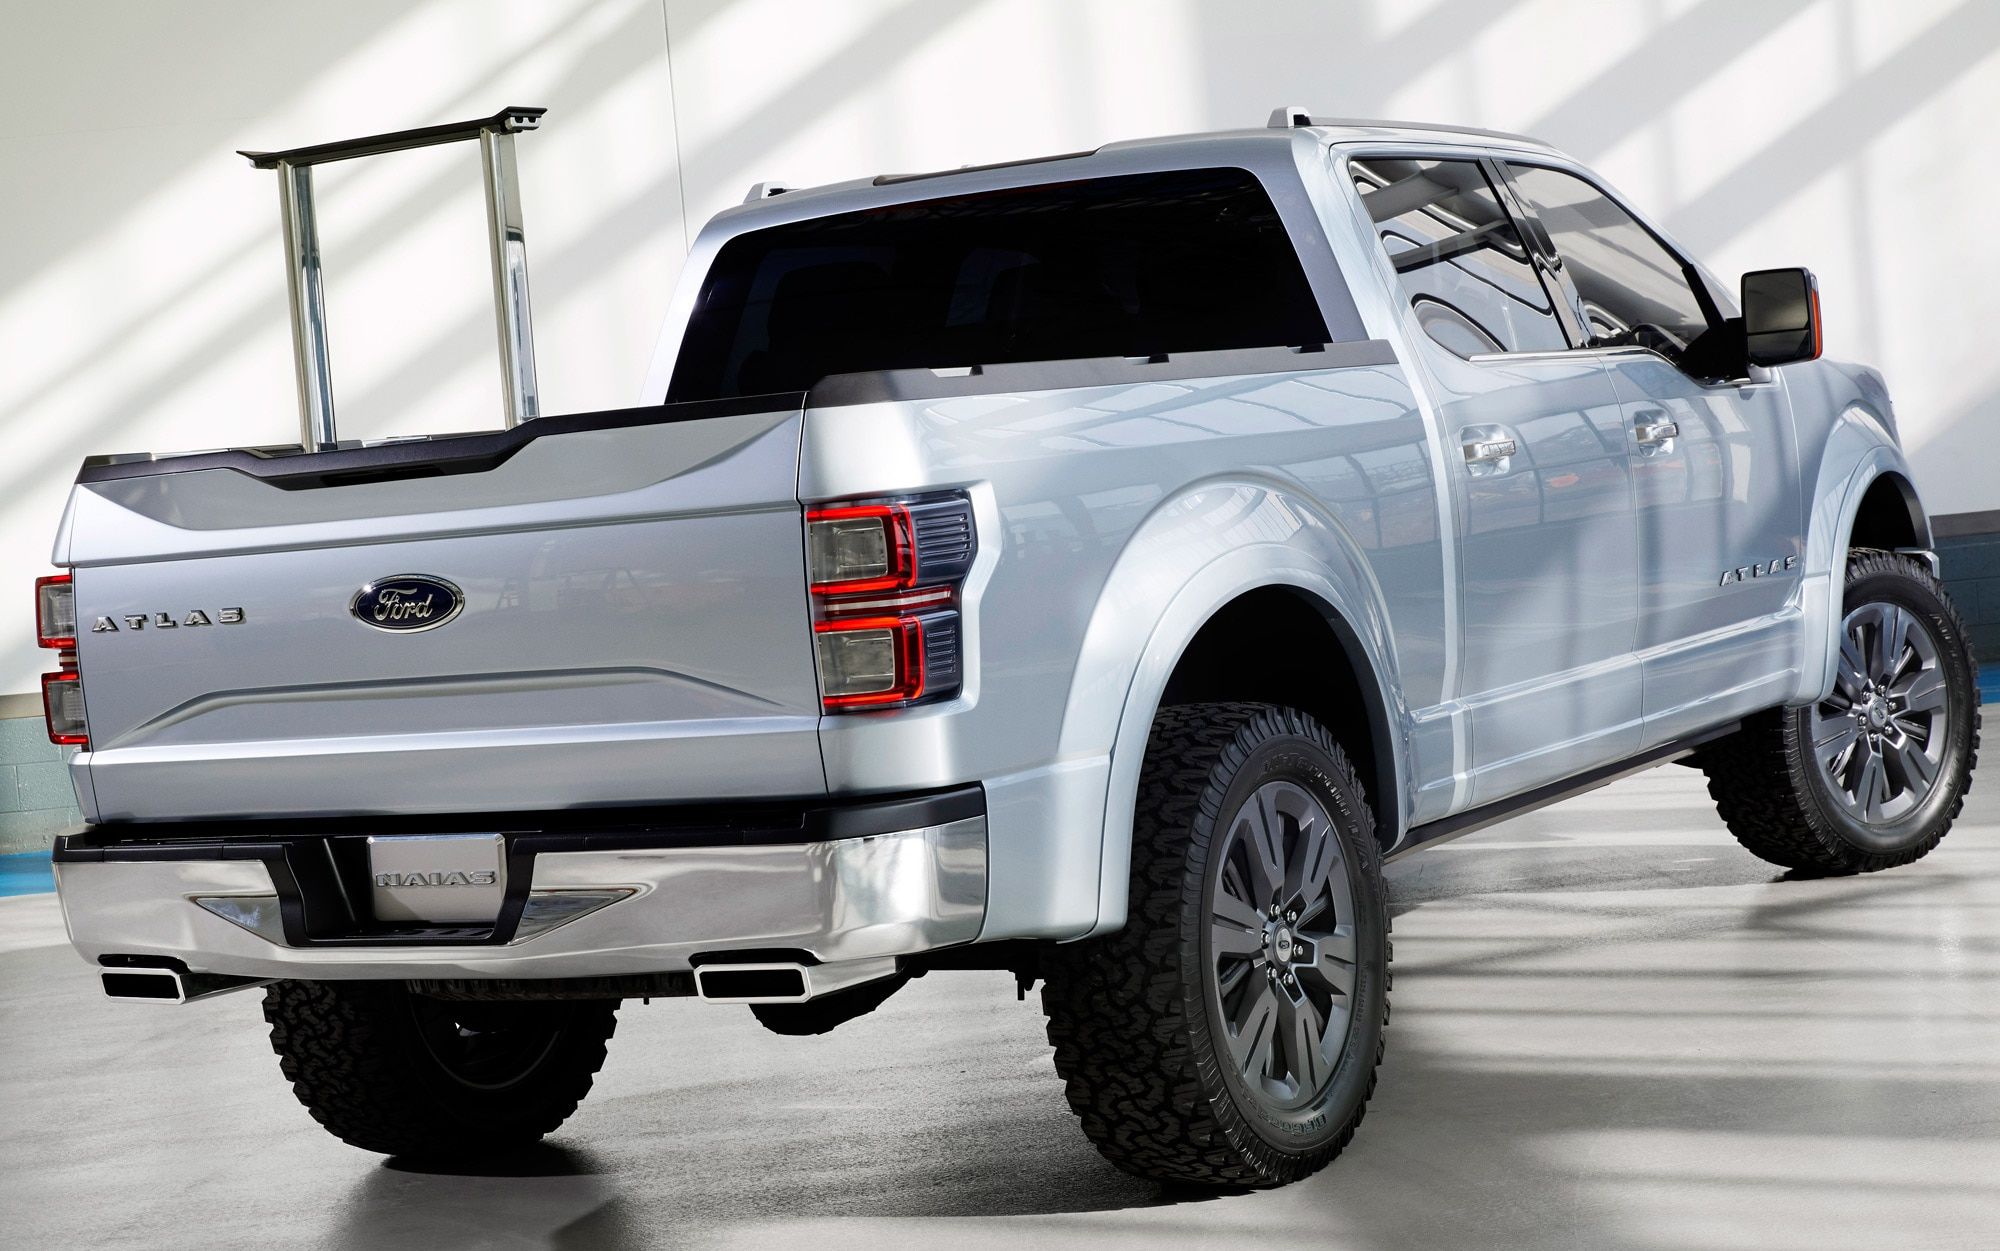 Ford Atlas Concept Rear Three Quarter 3